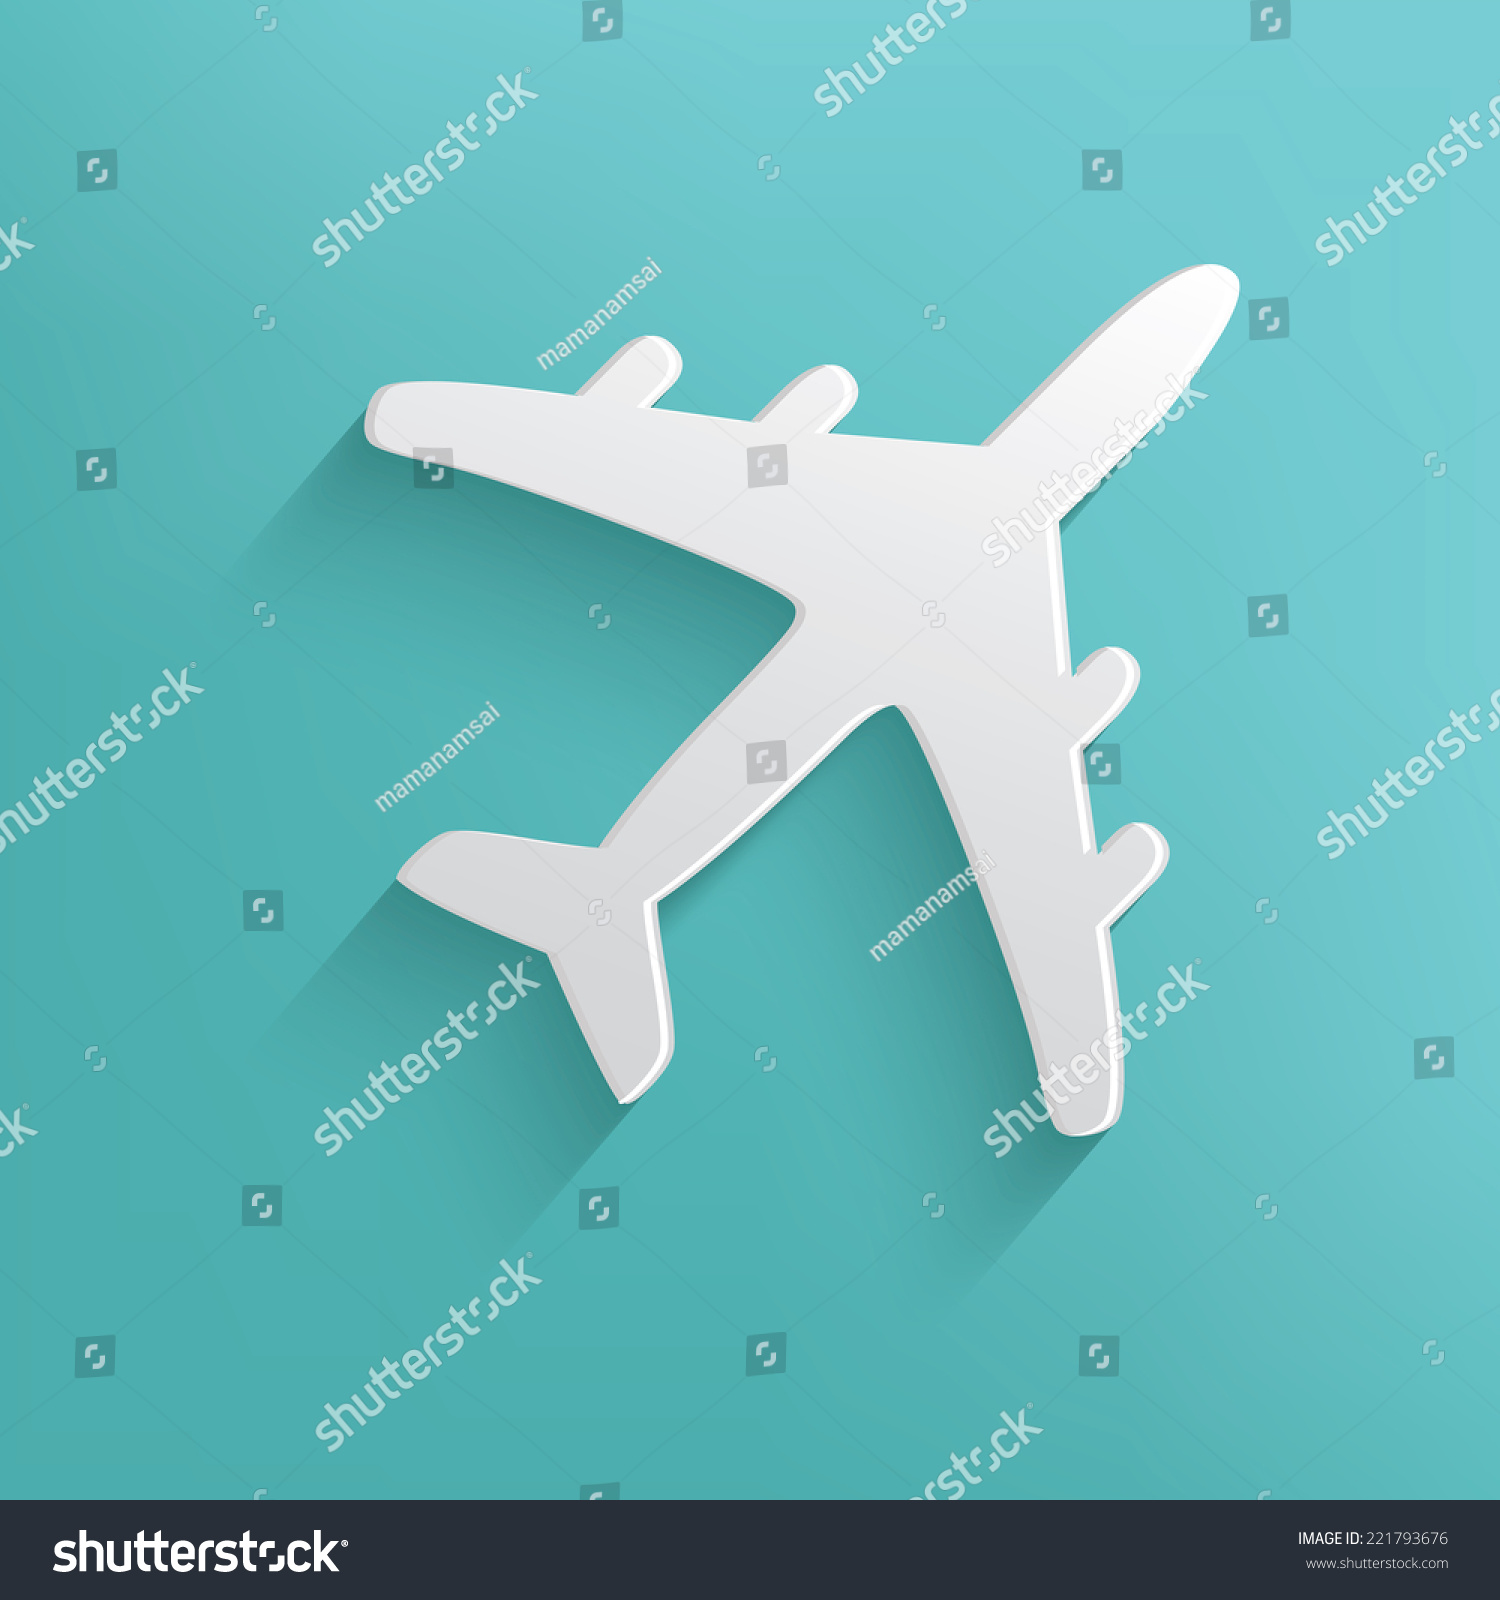 airplane symbol on blue backgroundclean vector